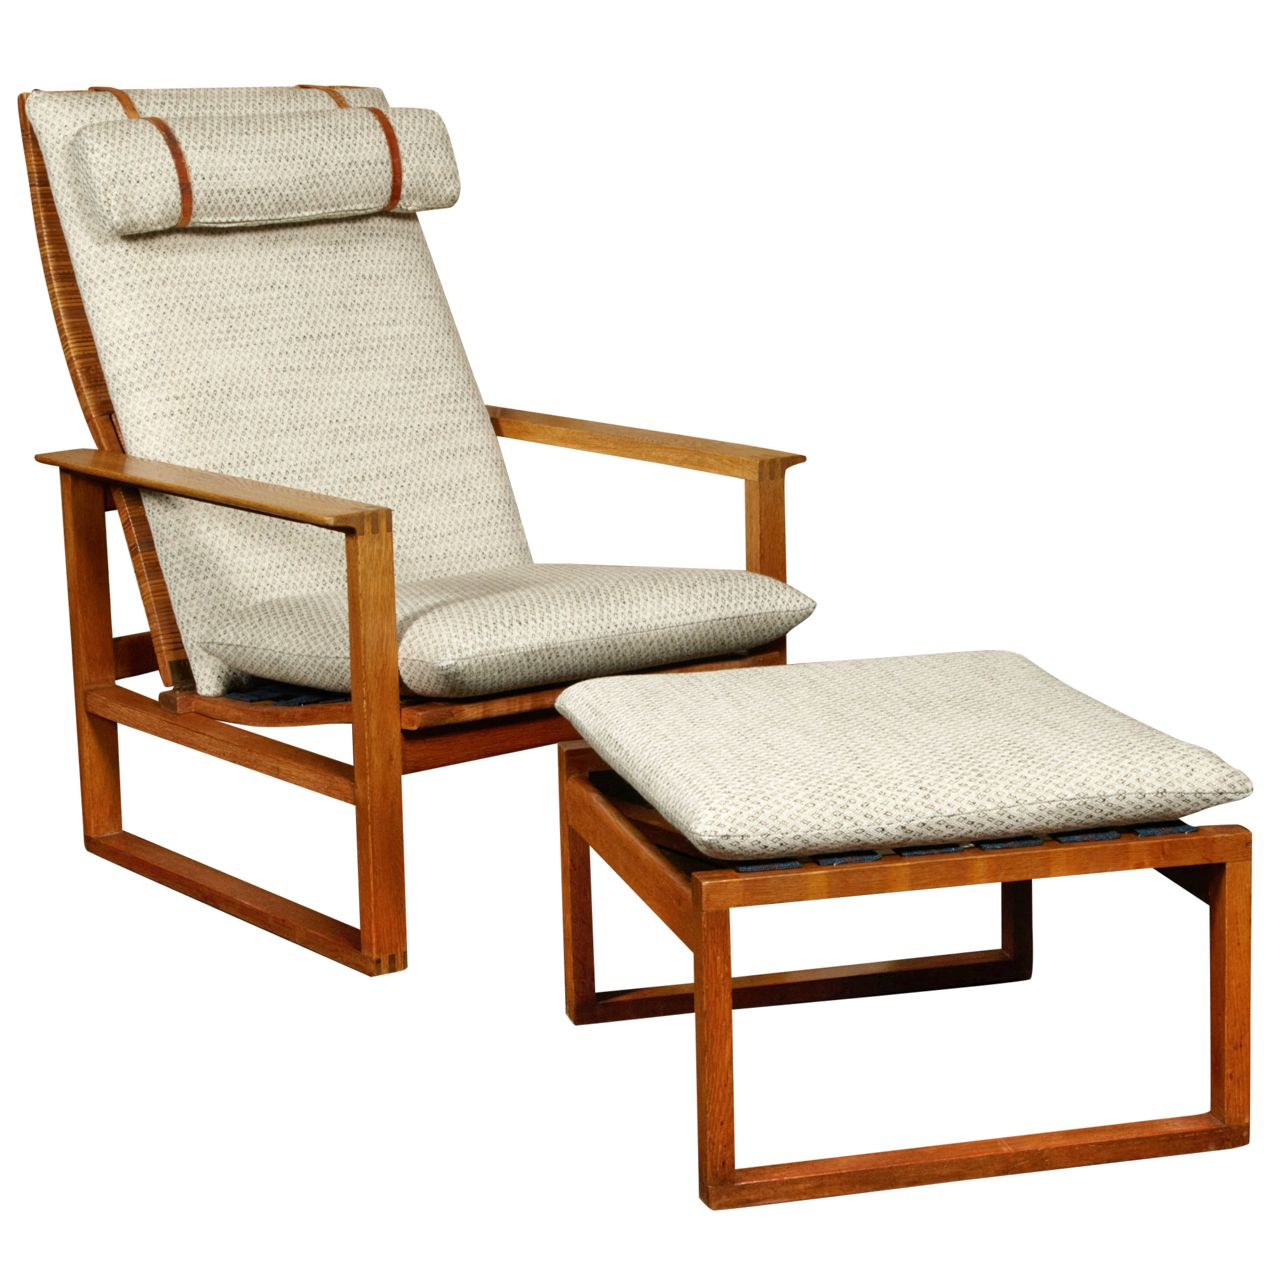 Easy Chair Ottoman By Borge Mogensen In Oak With Linen